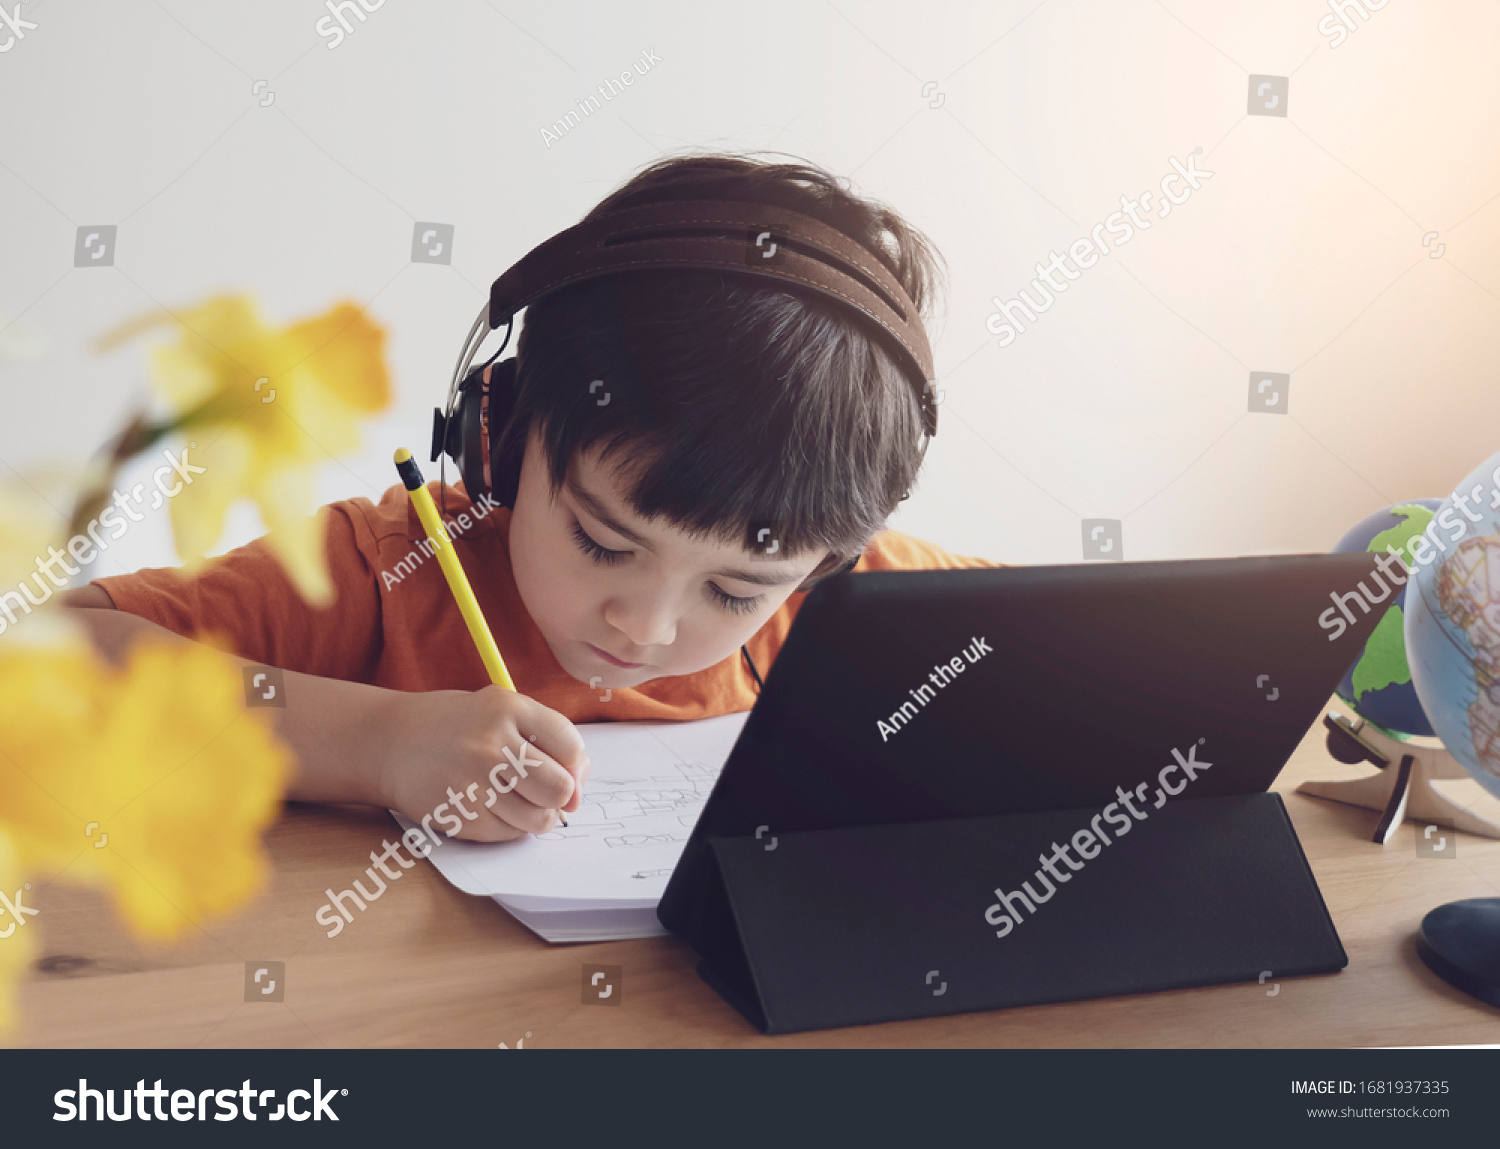 Kid self isolation using tablet for his homework,Child doing using digital tablet searching information on internet during covid 19 lock down,Home schooling,Social Distance,E-learning online education #1681937335